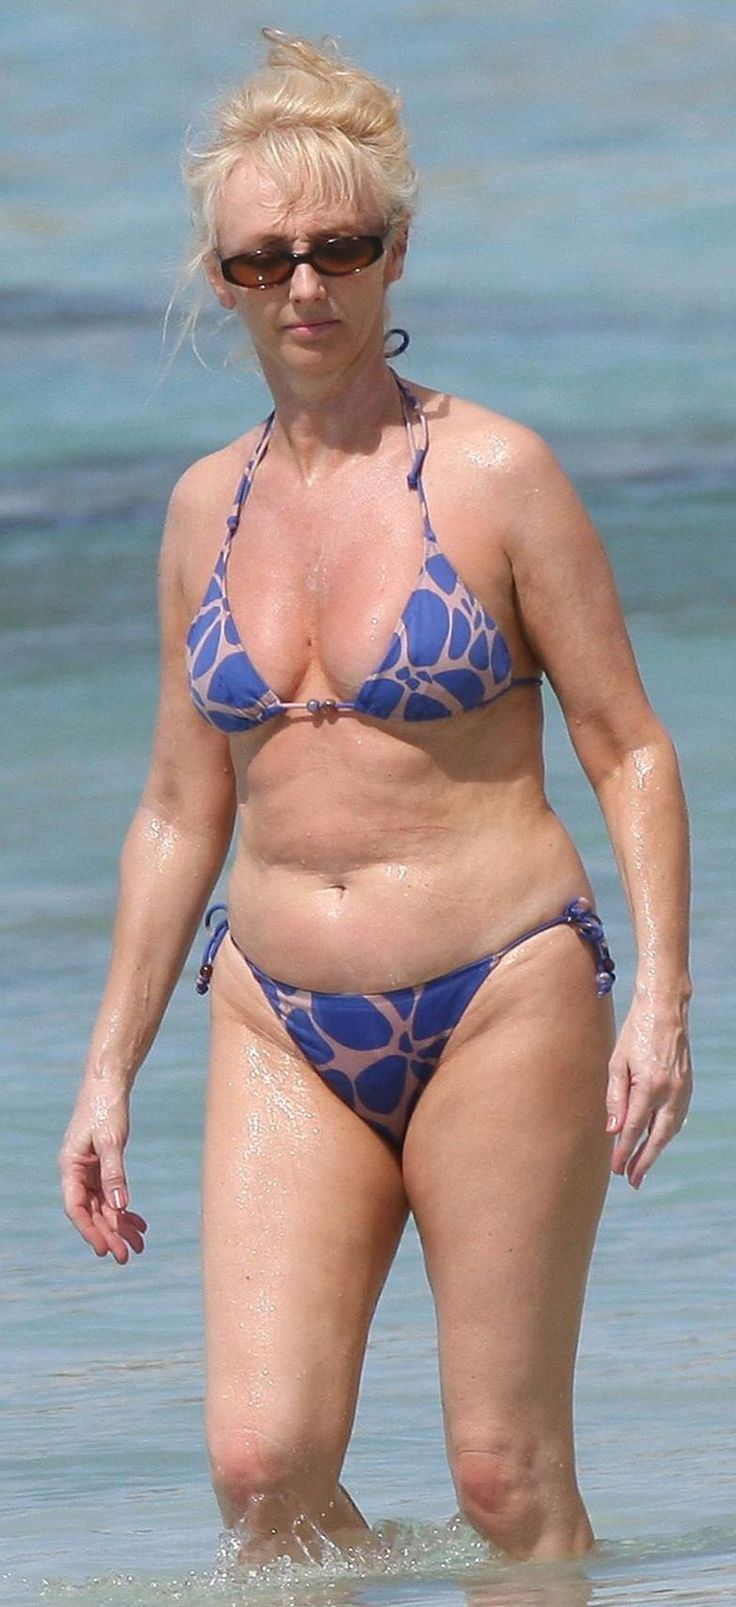 Candid Mature Women Photo Real Curves Pinterest-7483